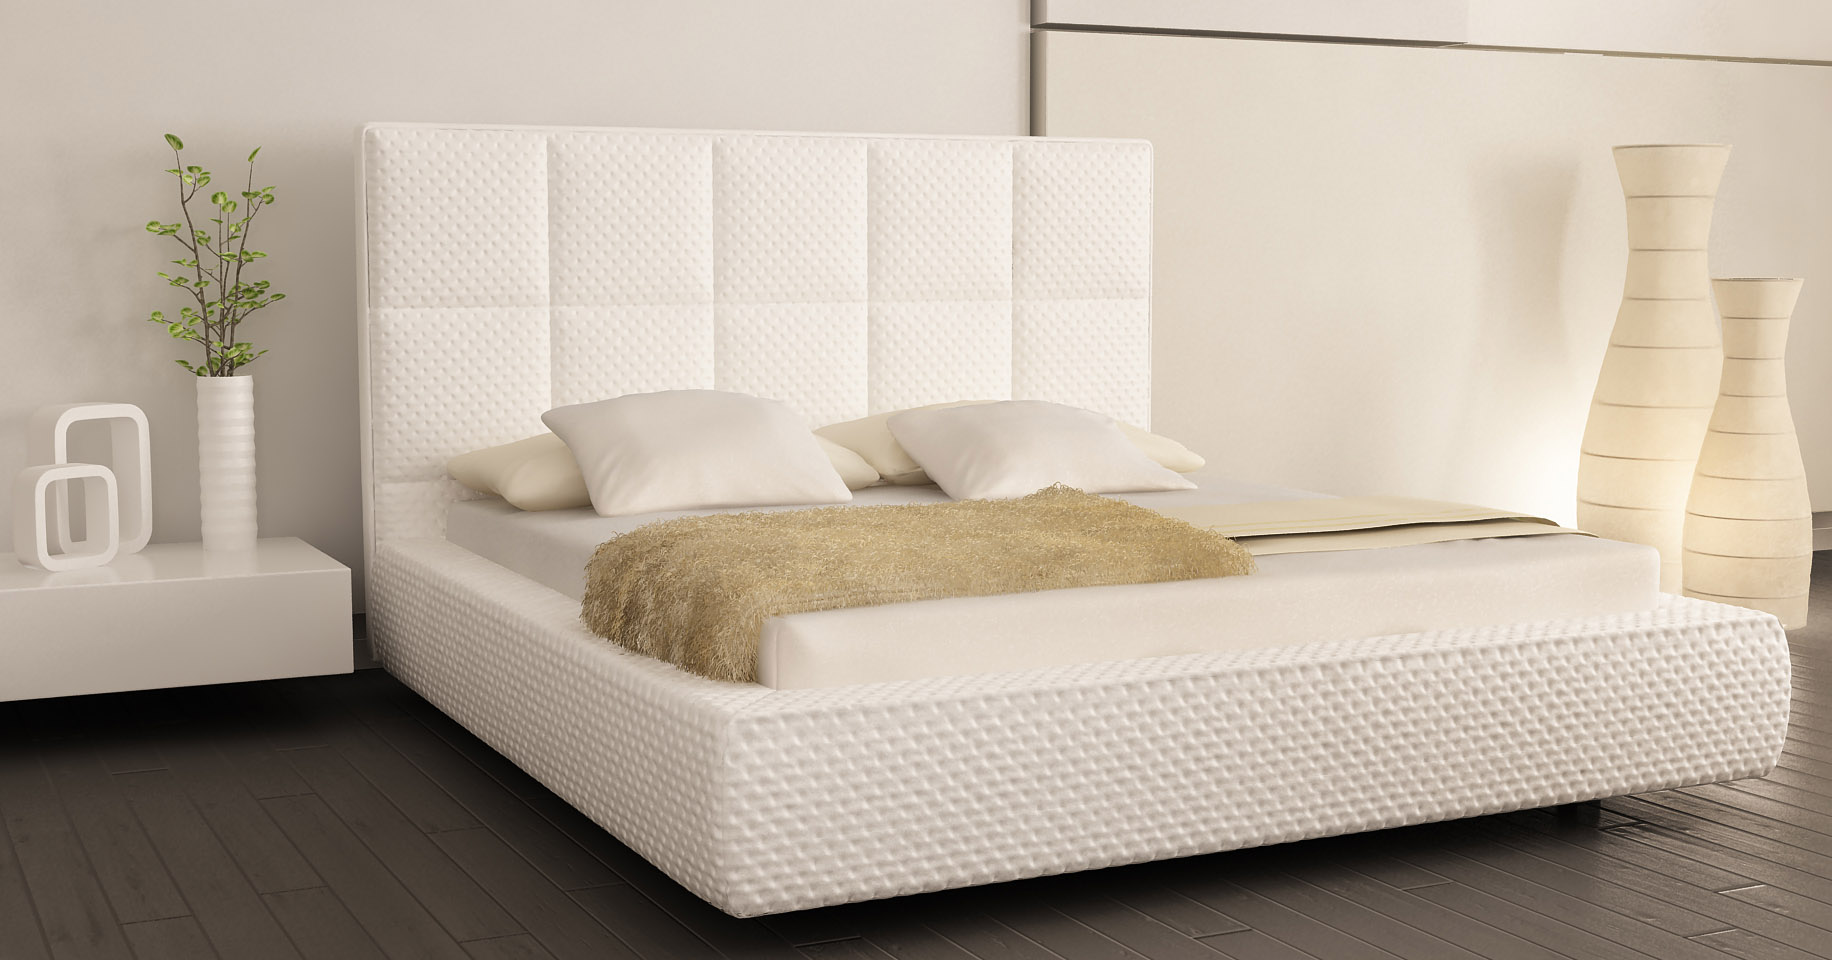 Spanish Bedroom White By A1future On Deviantart